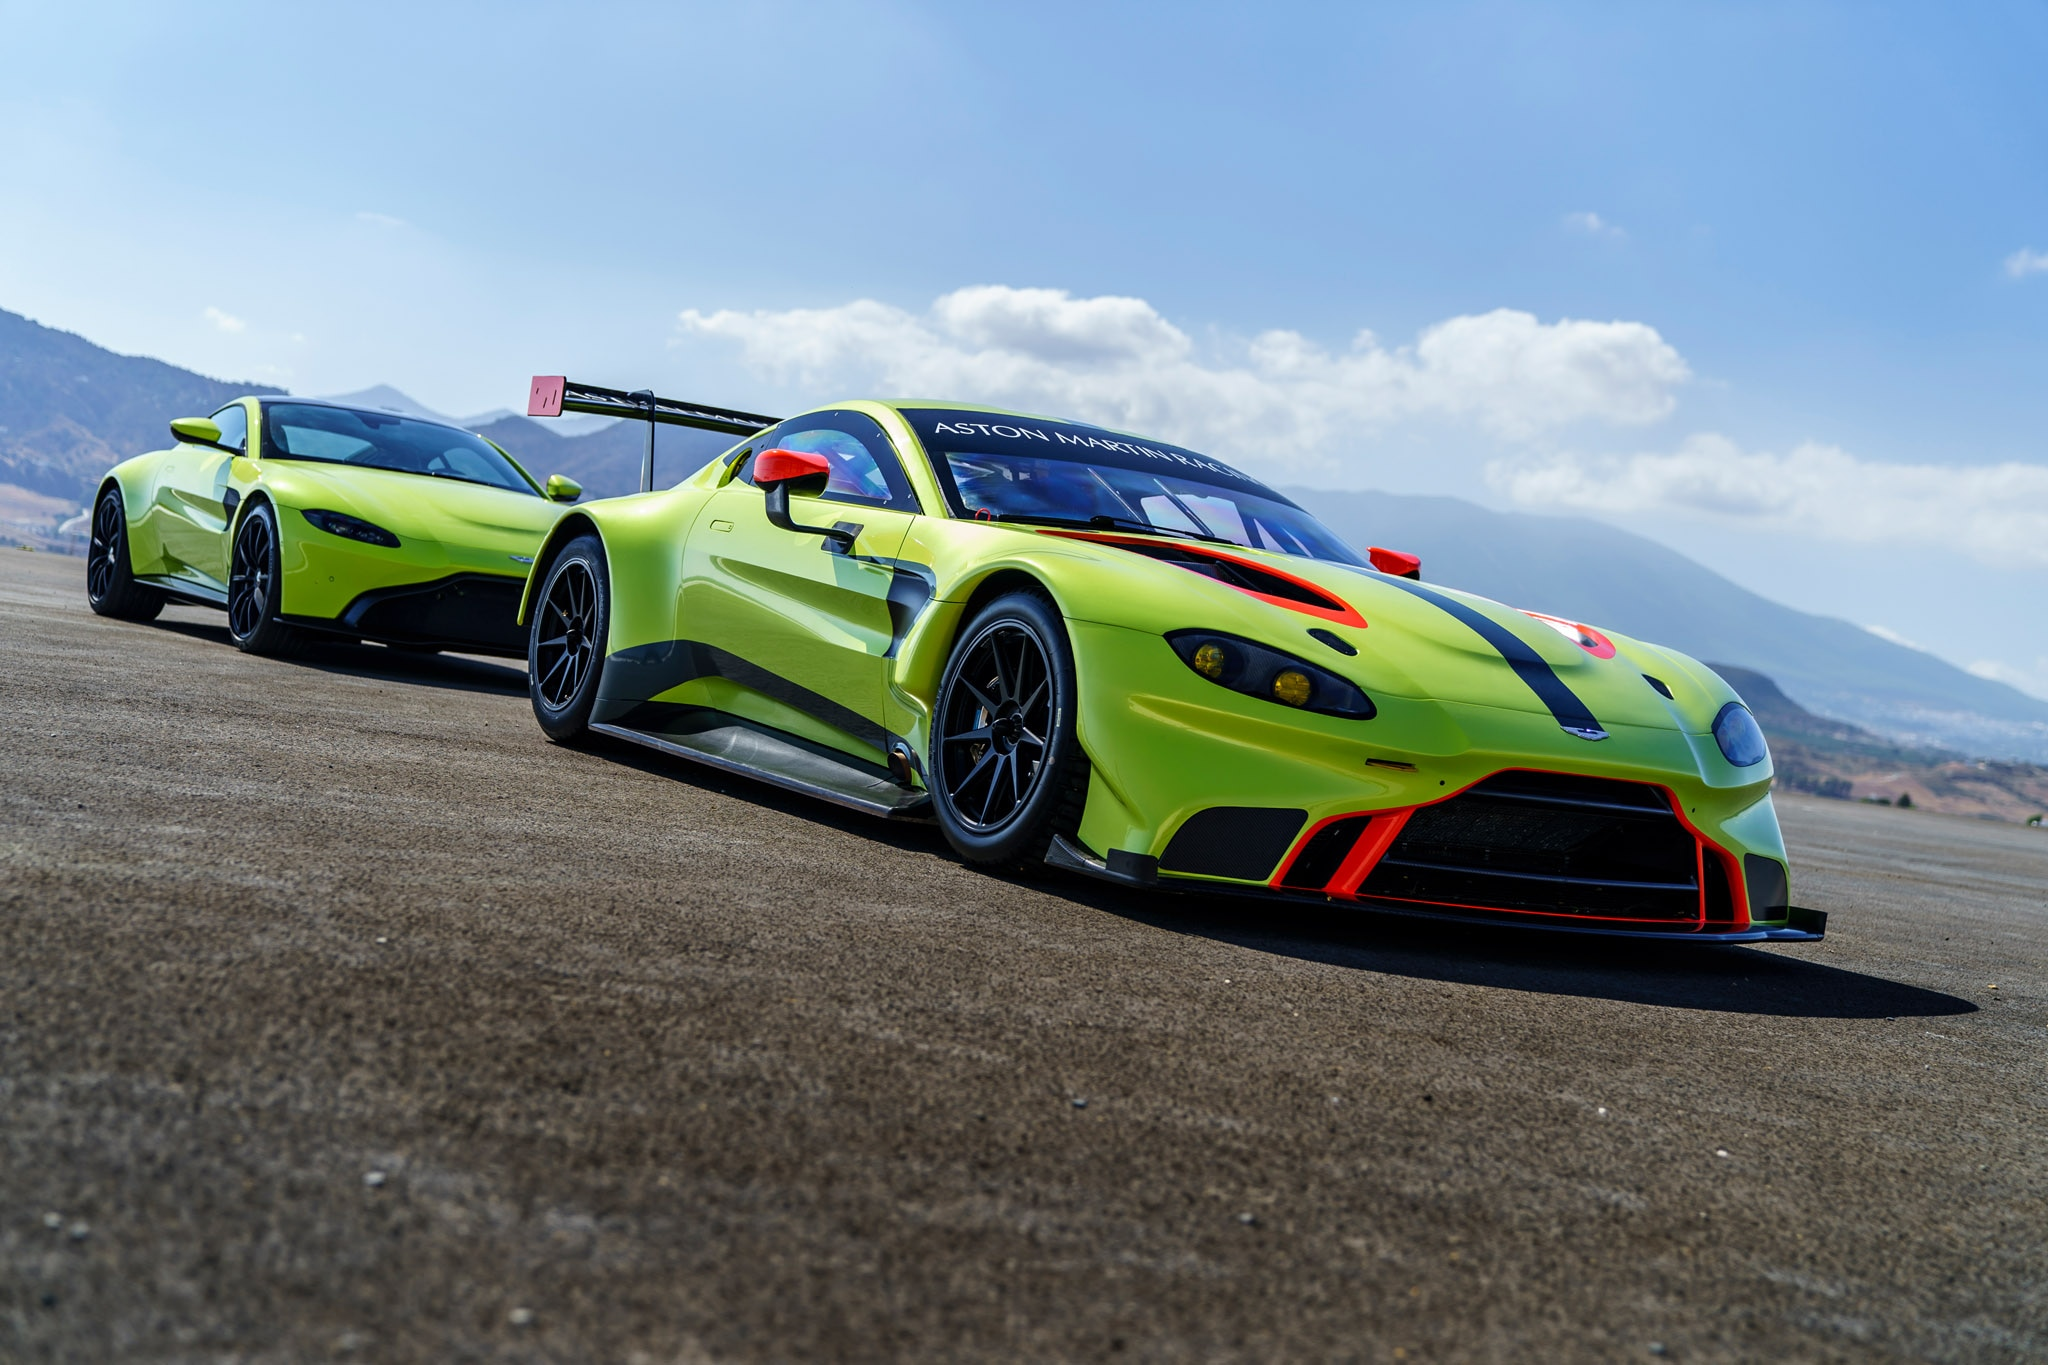 2018 aston martin vantage gte is even better looking than the street car automobile magazine. Black Bedroom Furniture Sets. Home Design Ideas